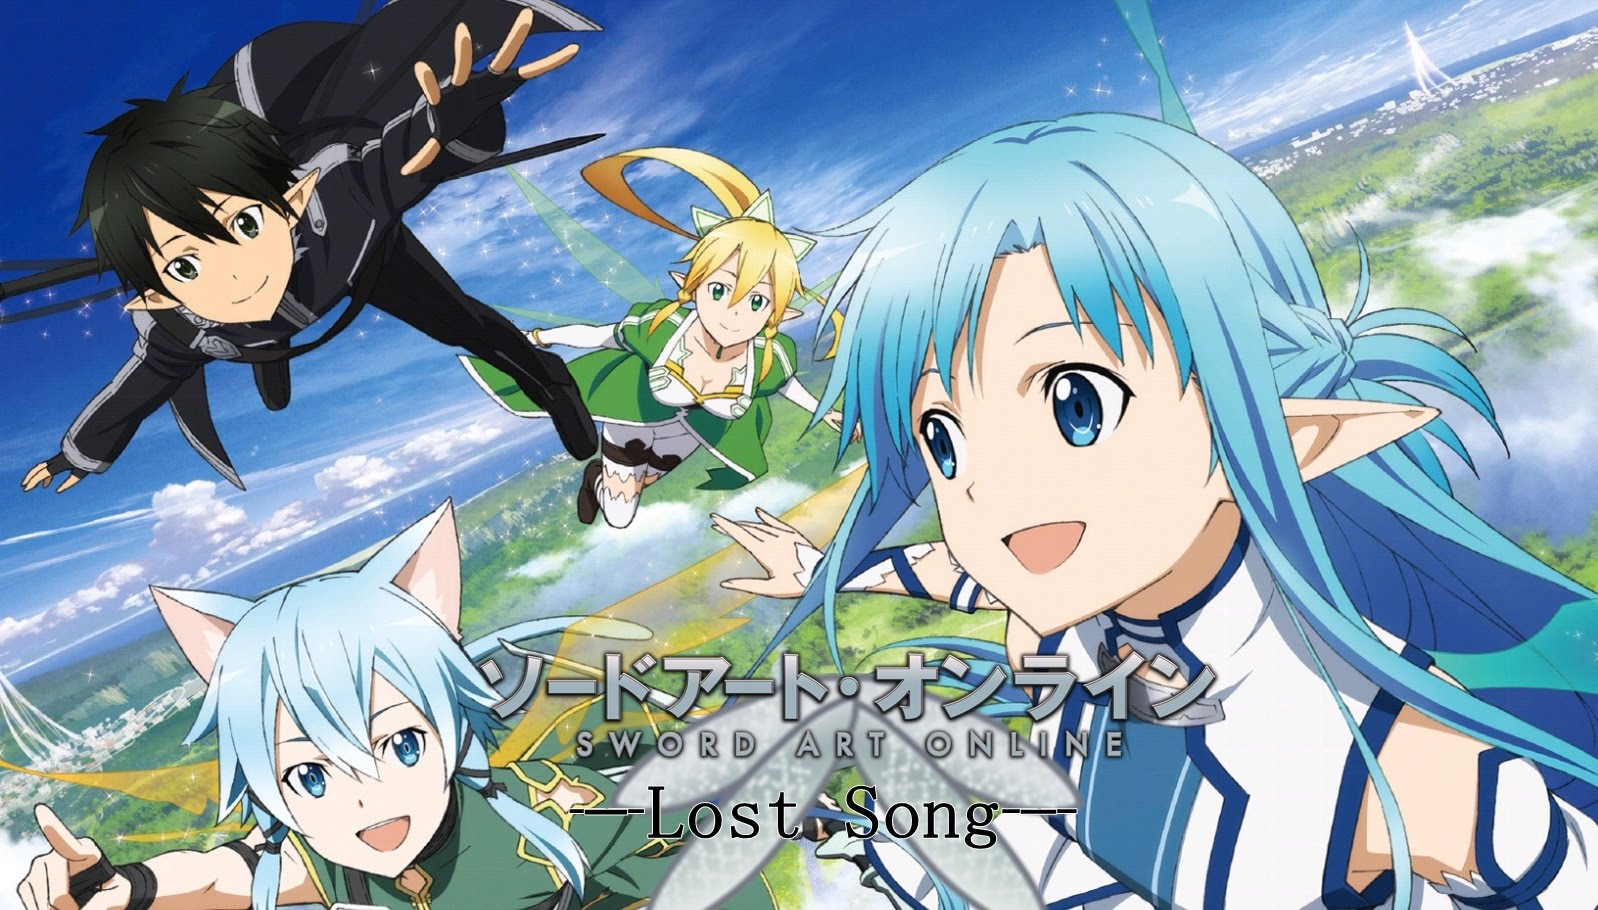 sword_art_online_last_song